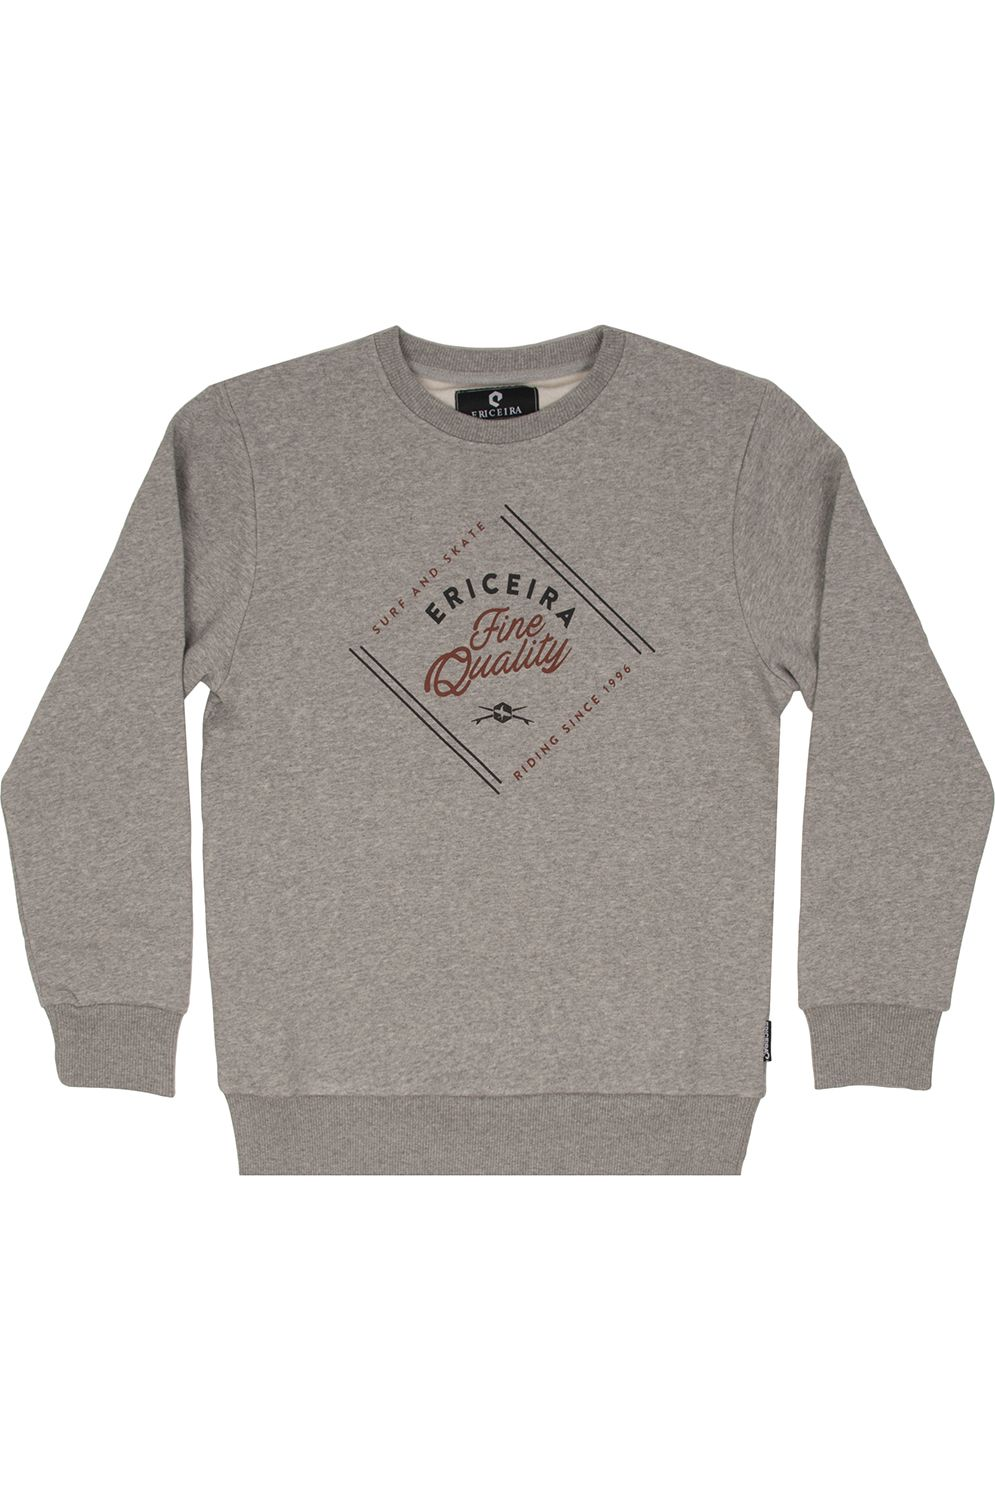 Sweat Basica Ericeira Surf Skate SO LONG Grey Heather